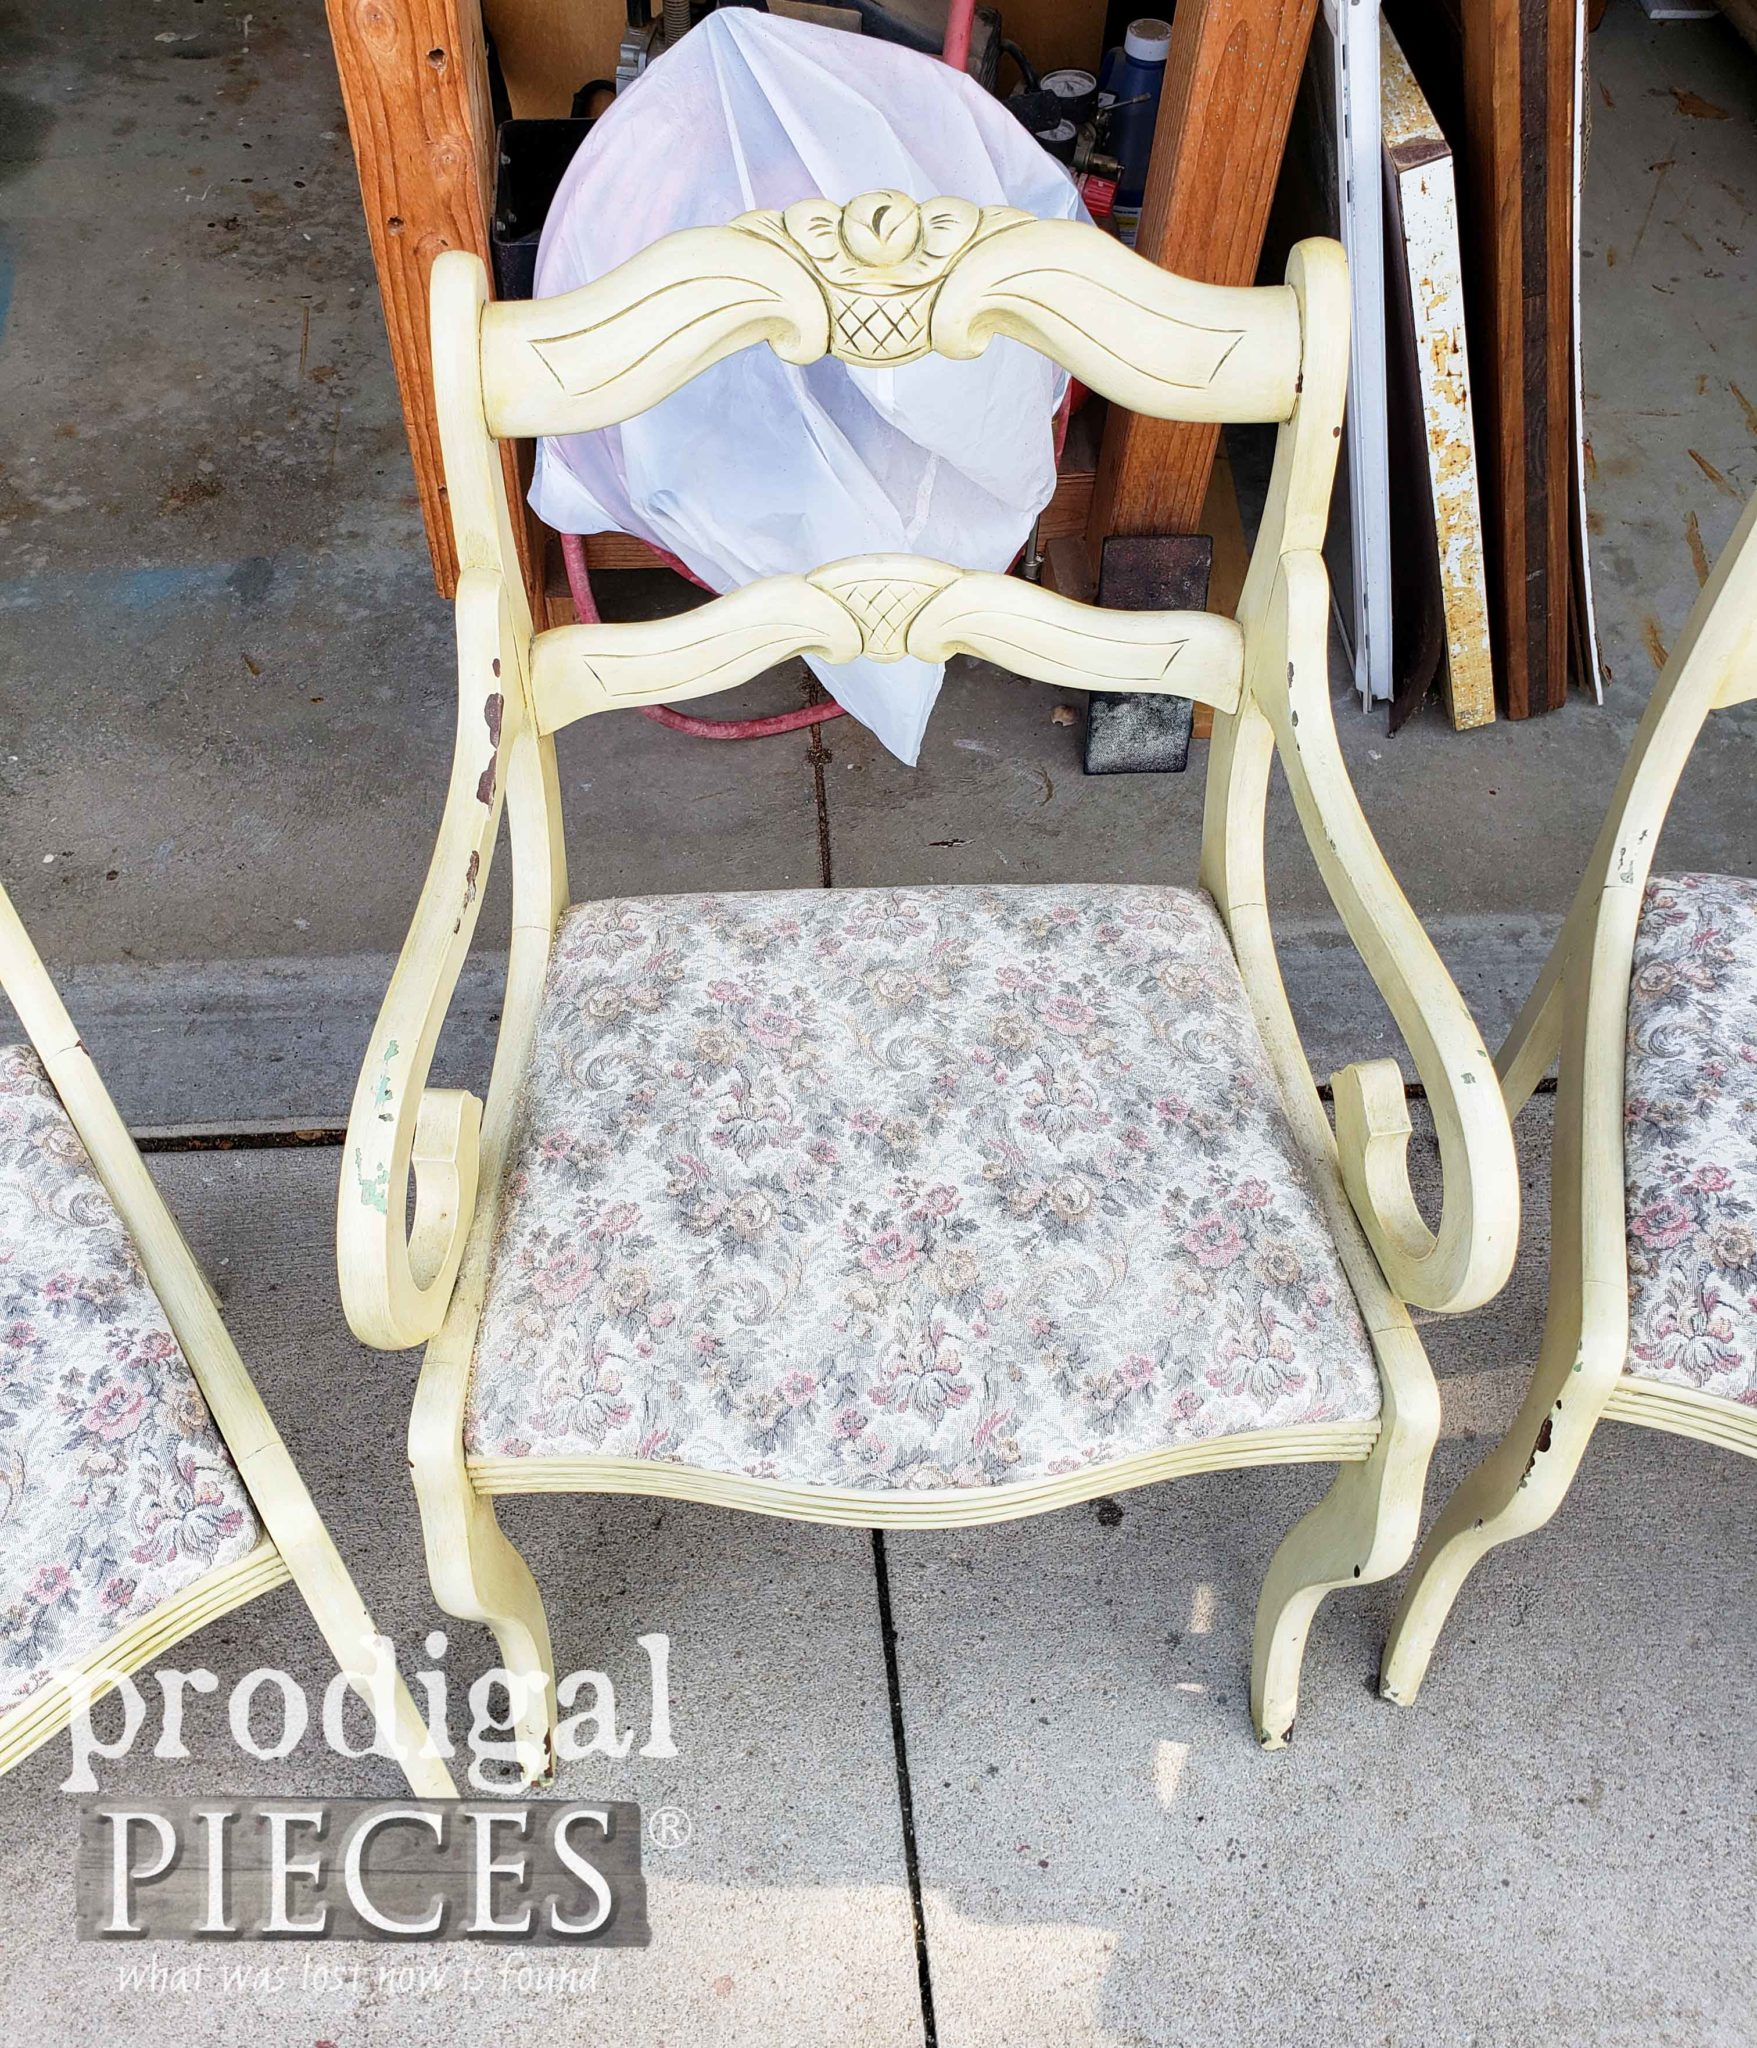 Vintage Rose Back Chair with Upholstered Seat | prodigalpieces.com